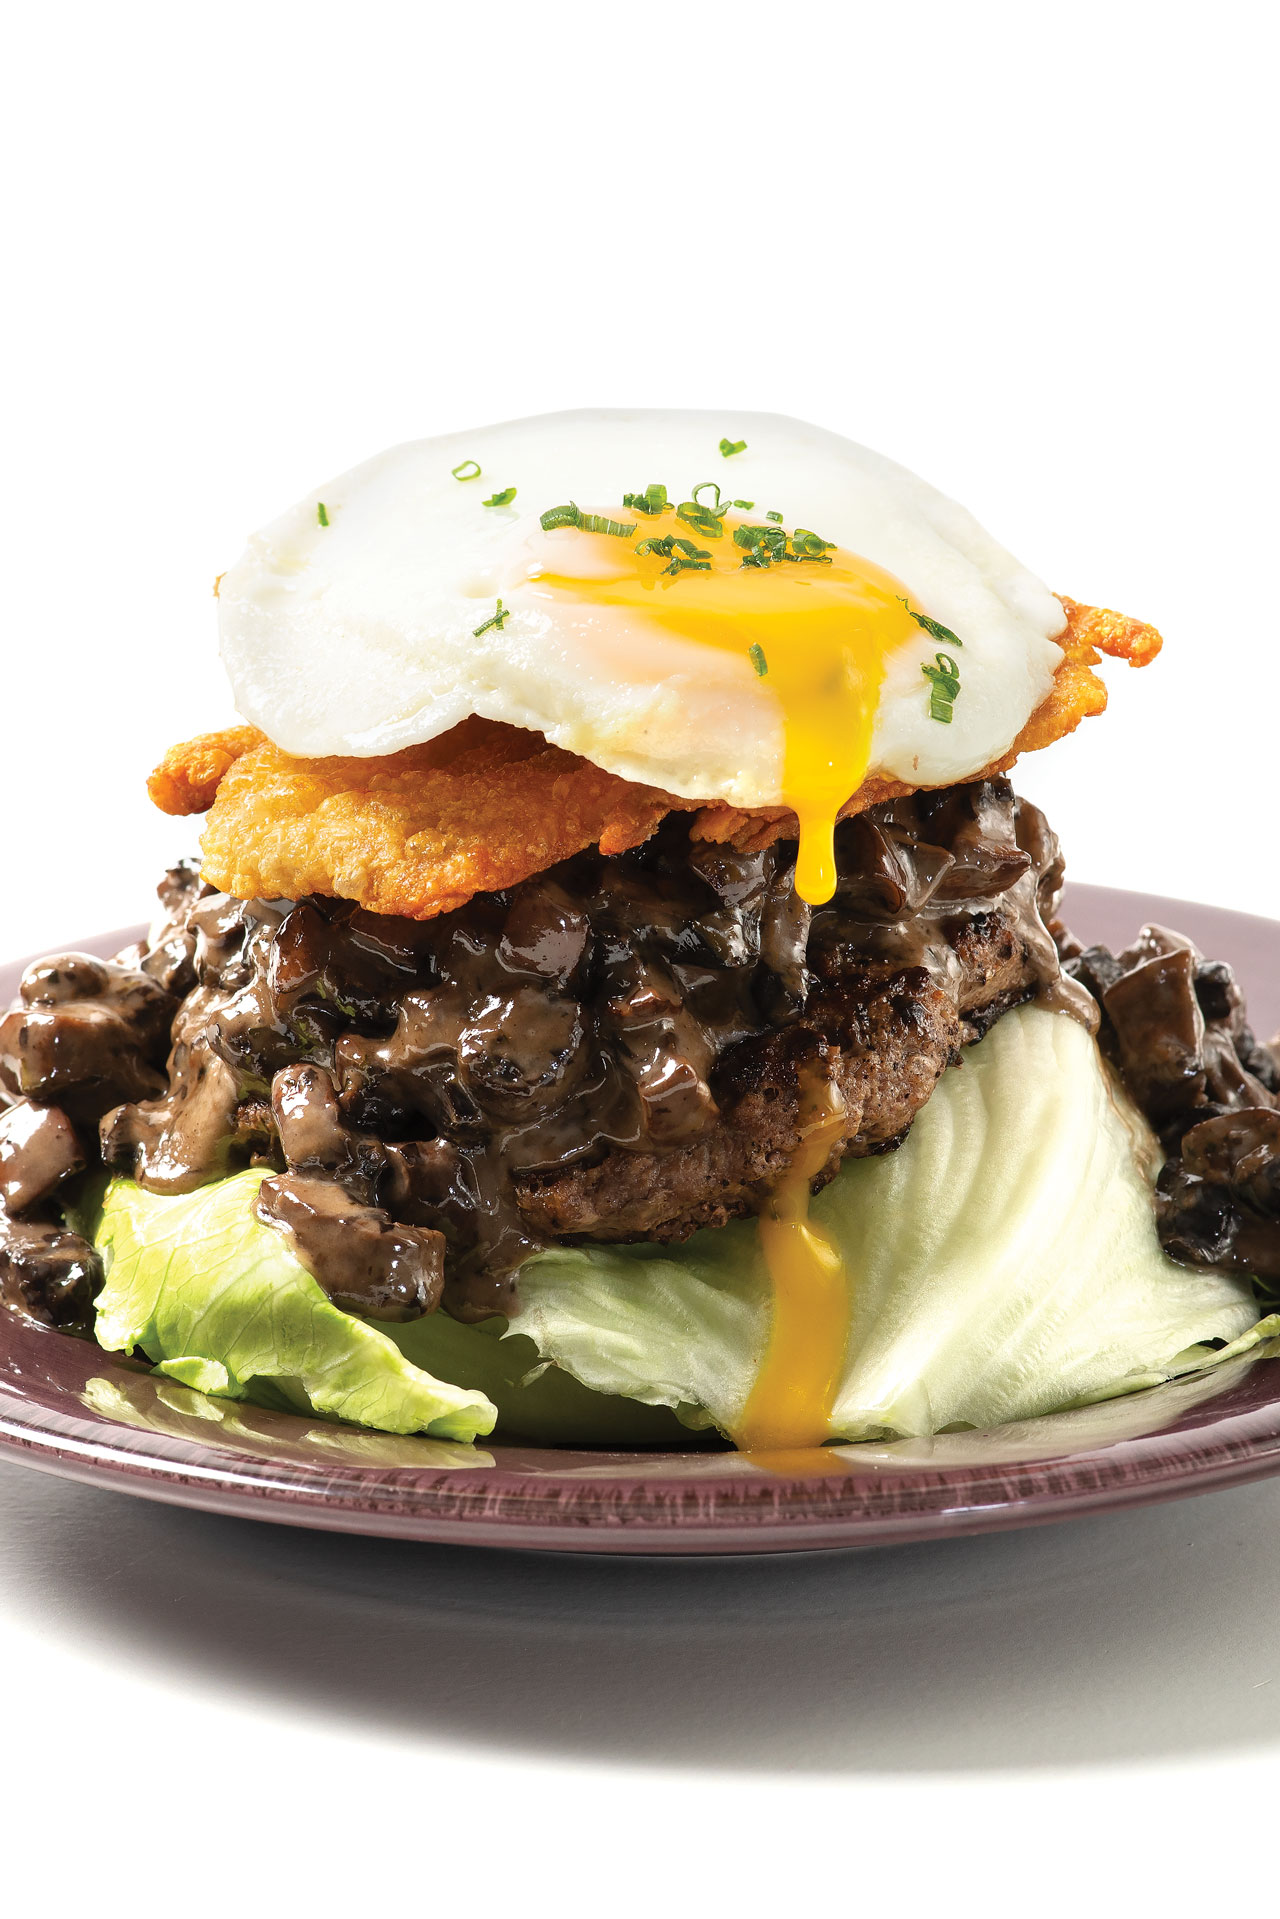 low-carb bison burger with chicken skin, a fried egg and no bun